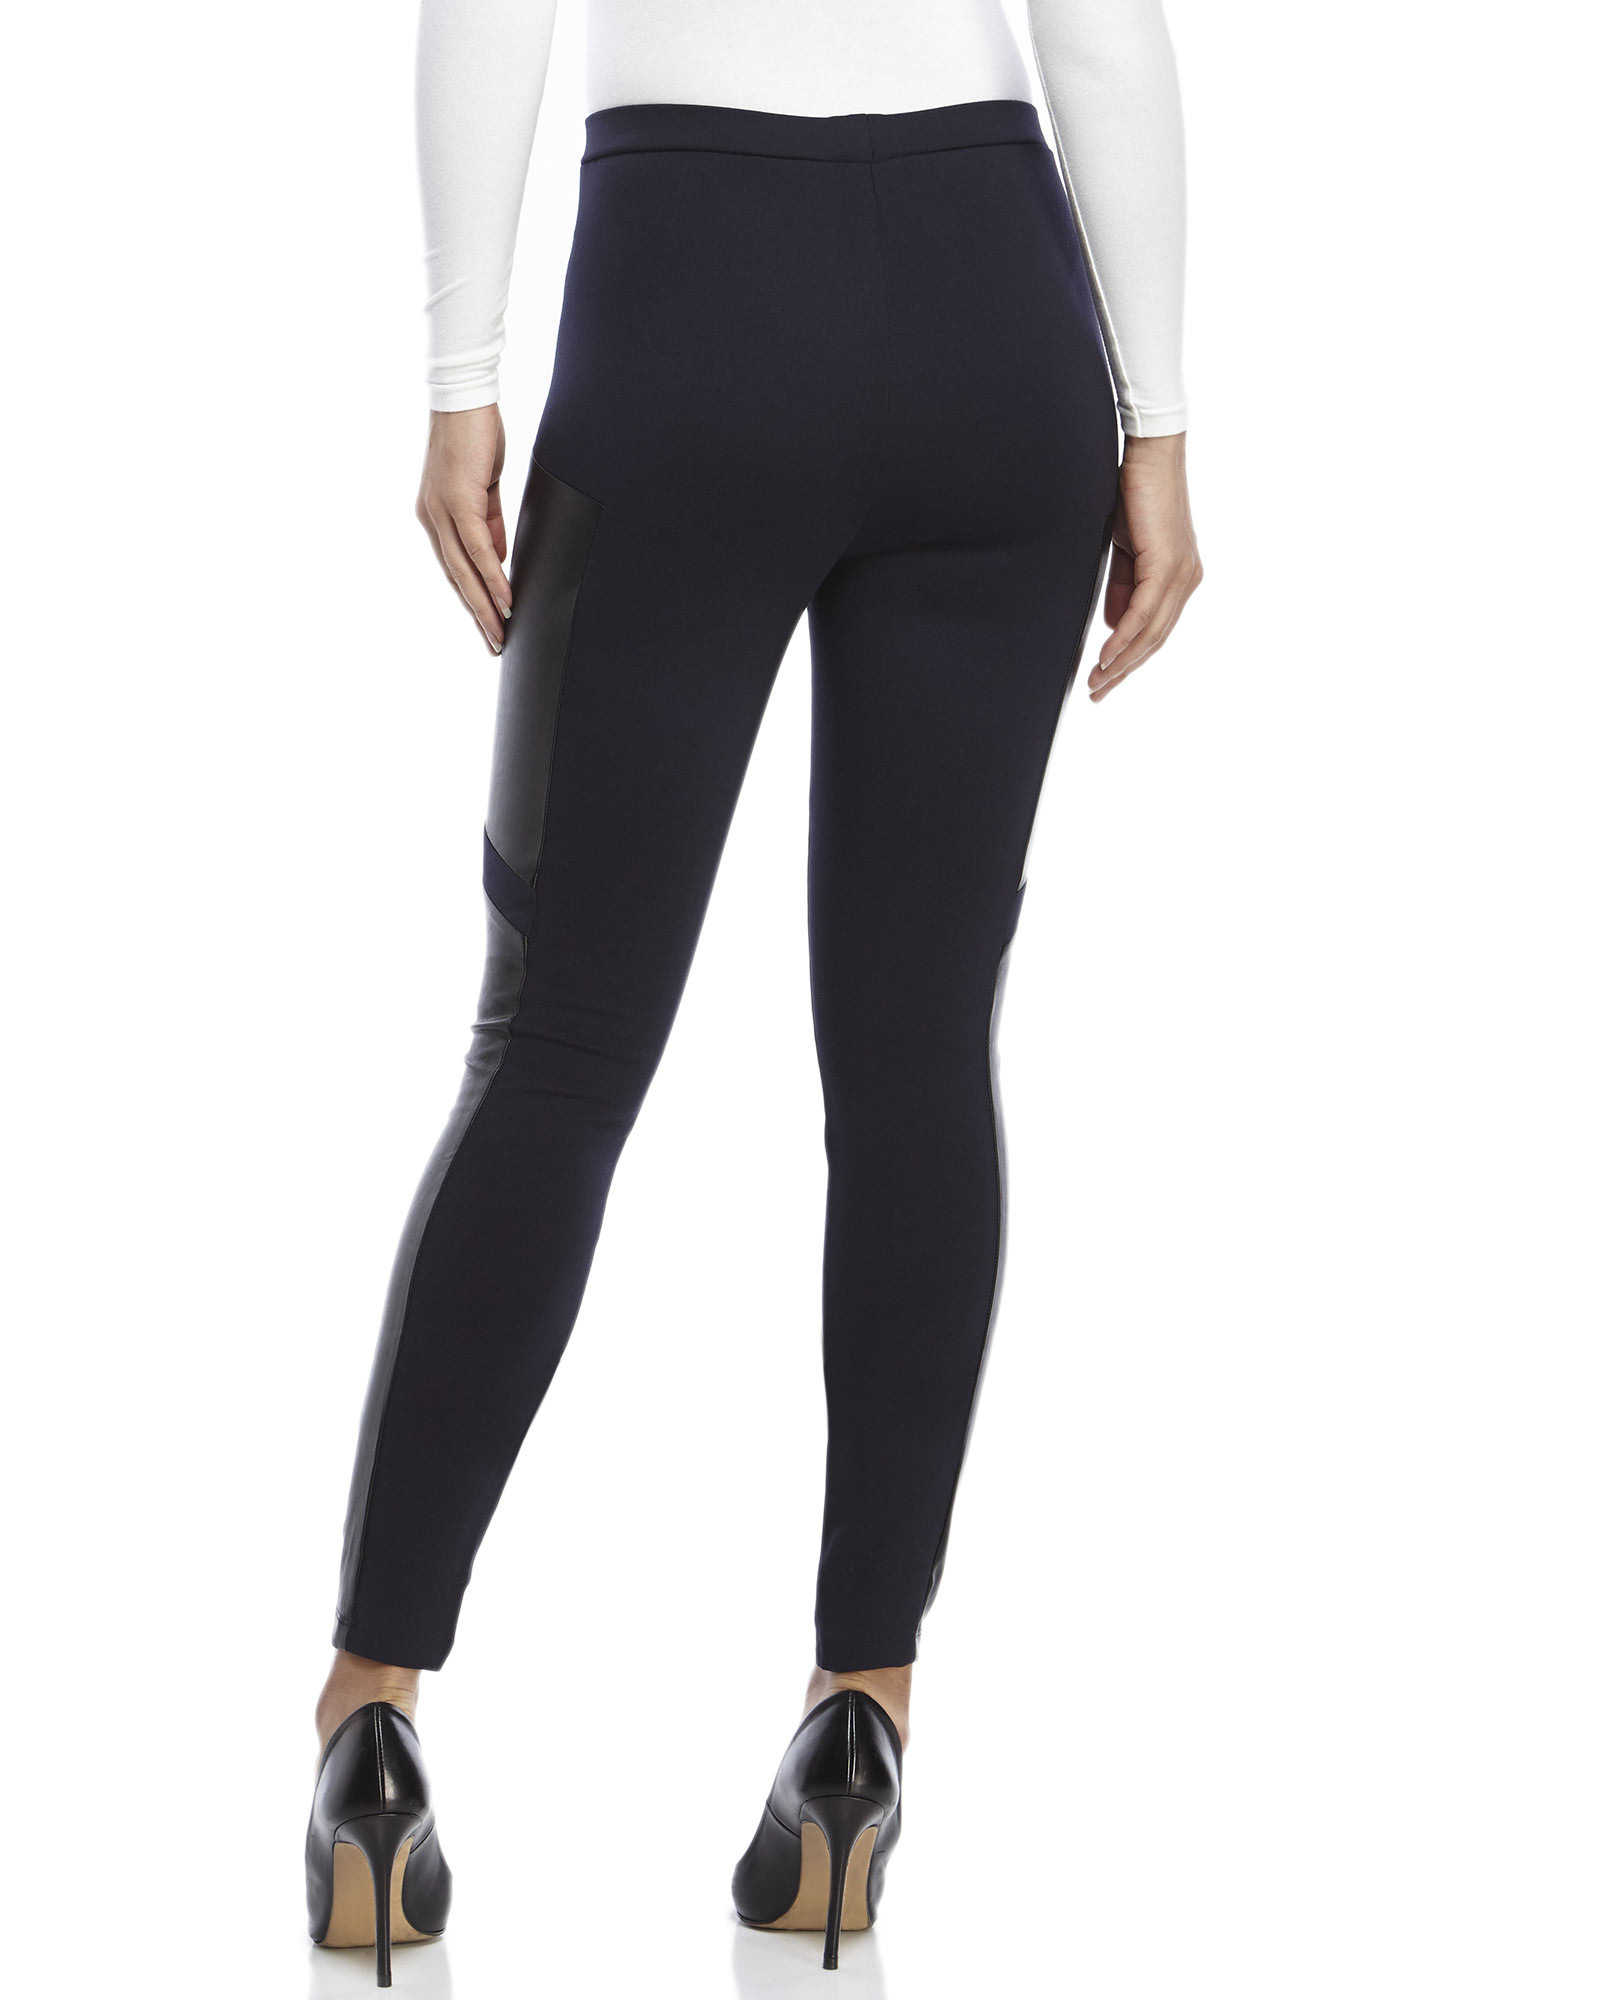 Free shipping BOTH ways on dknyc legging w faux leather front panel black, from our vast selection of styles. Fast delivery, and 24/7/ real-person service with a smile. Click or call